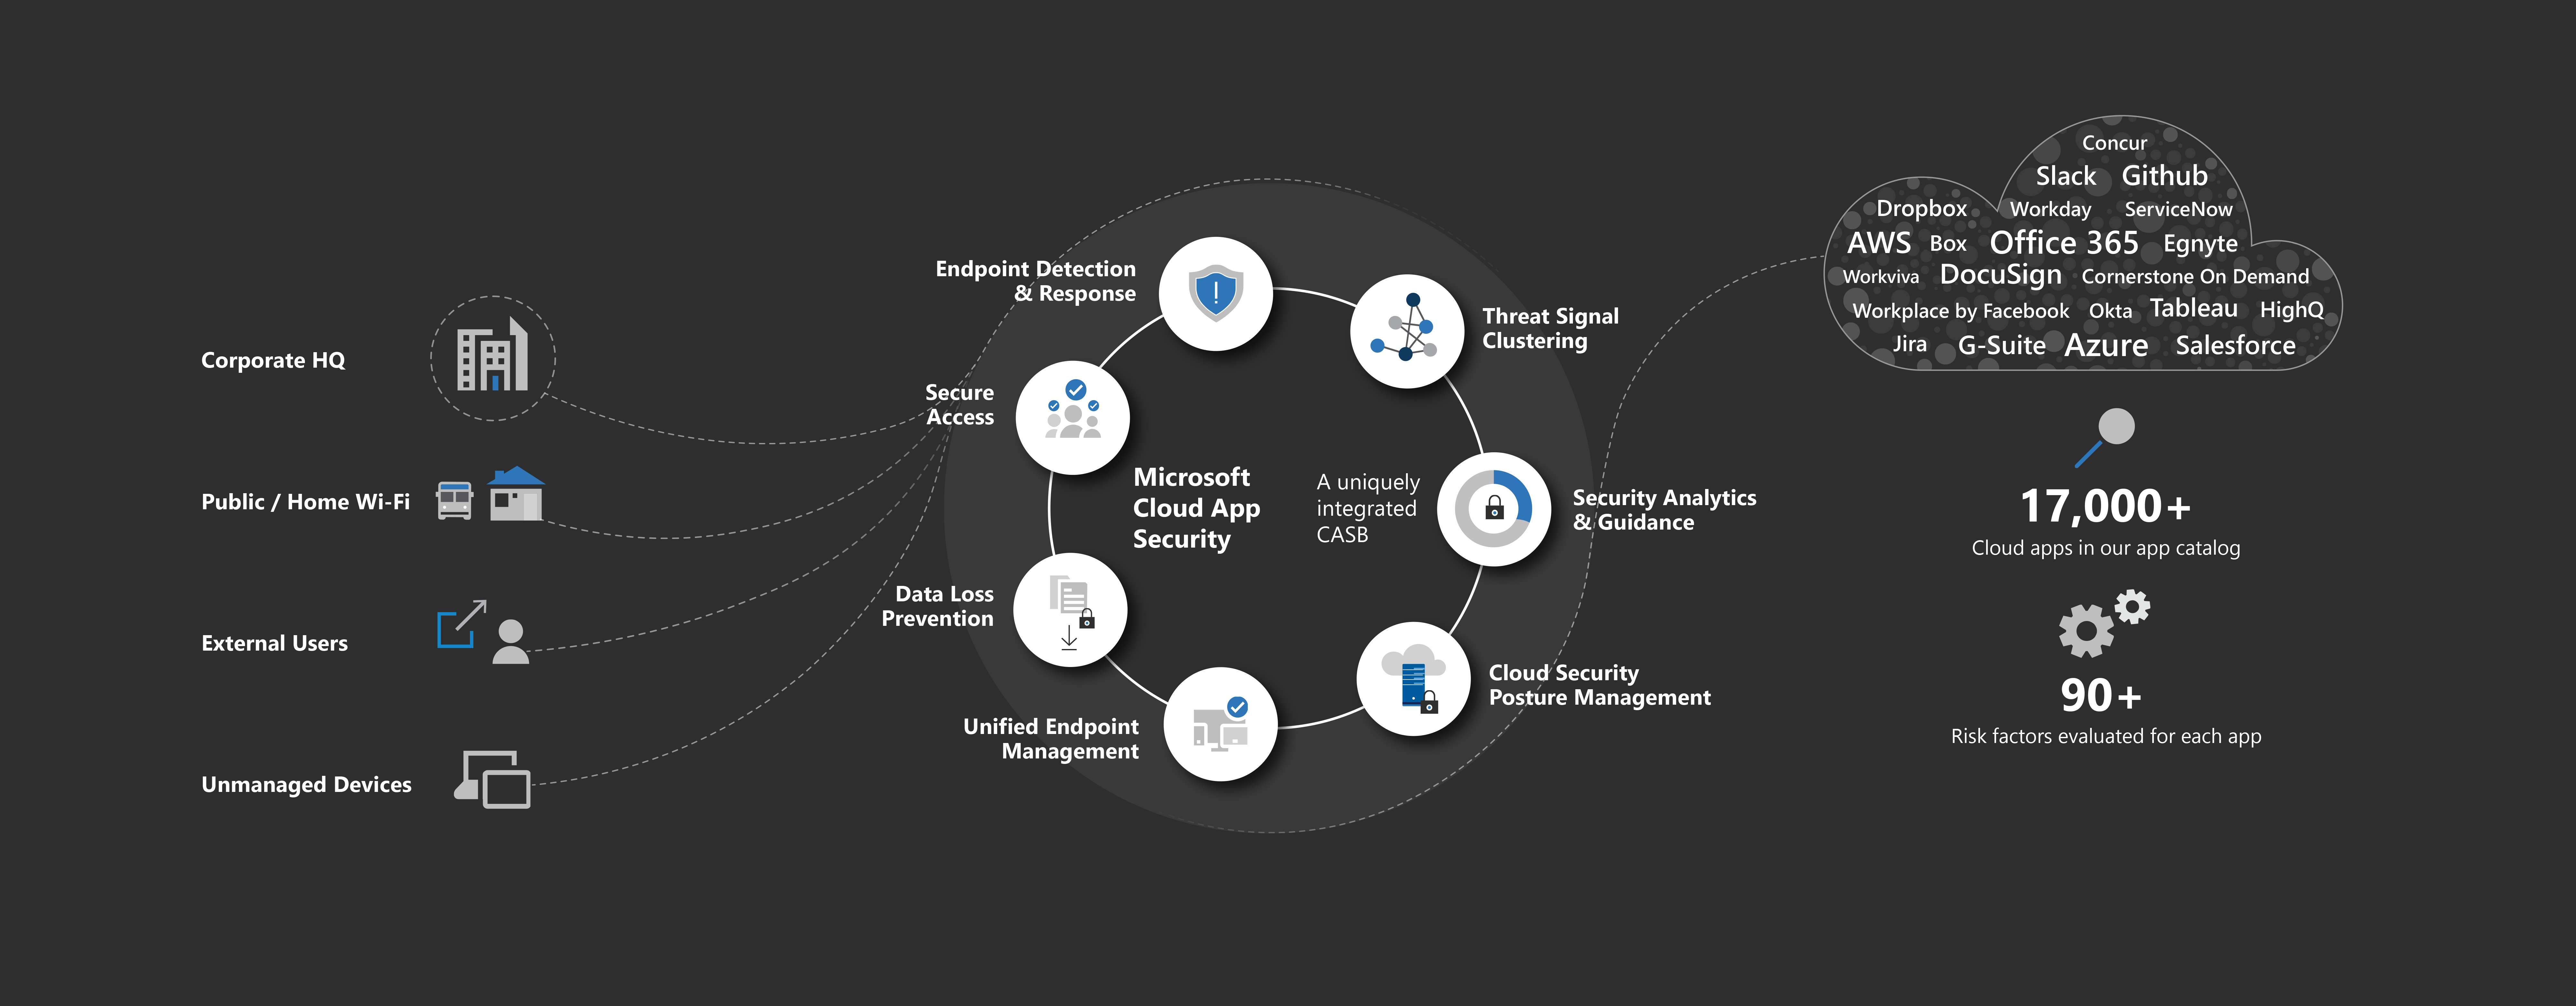 A diagram showing the Microsoft Cloud App Security and its integration with CSAB solutions